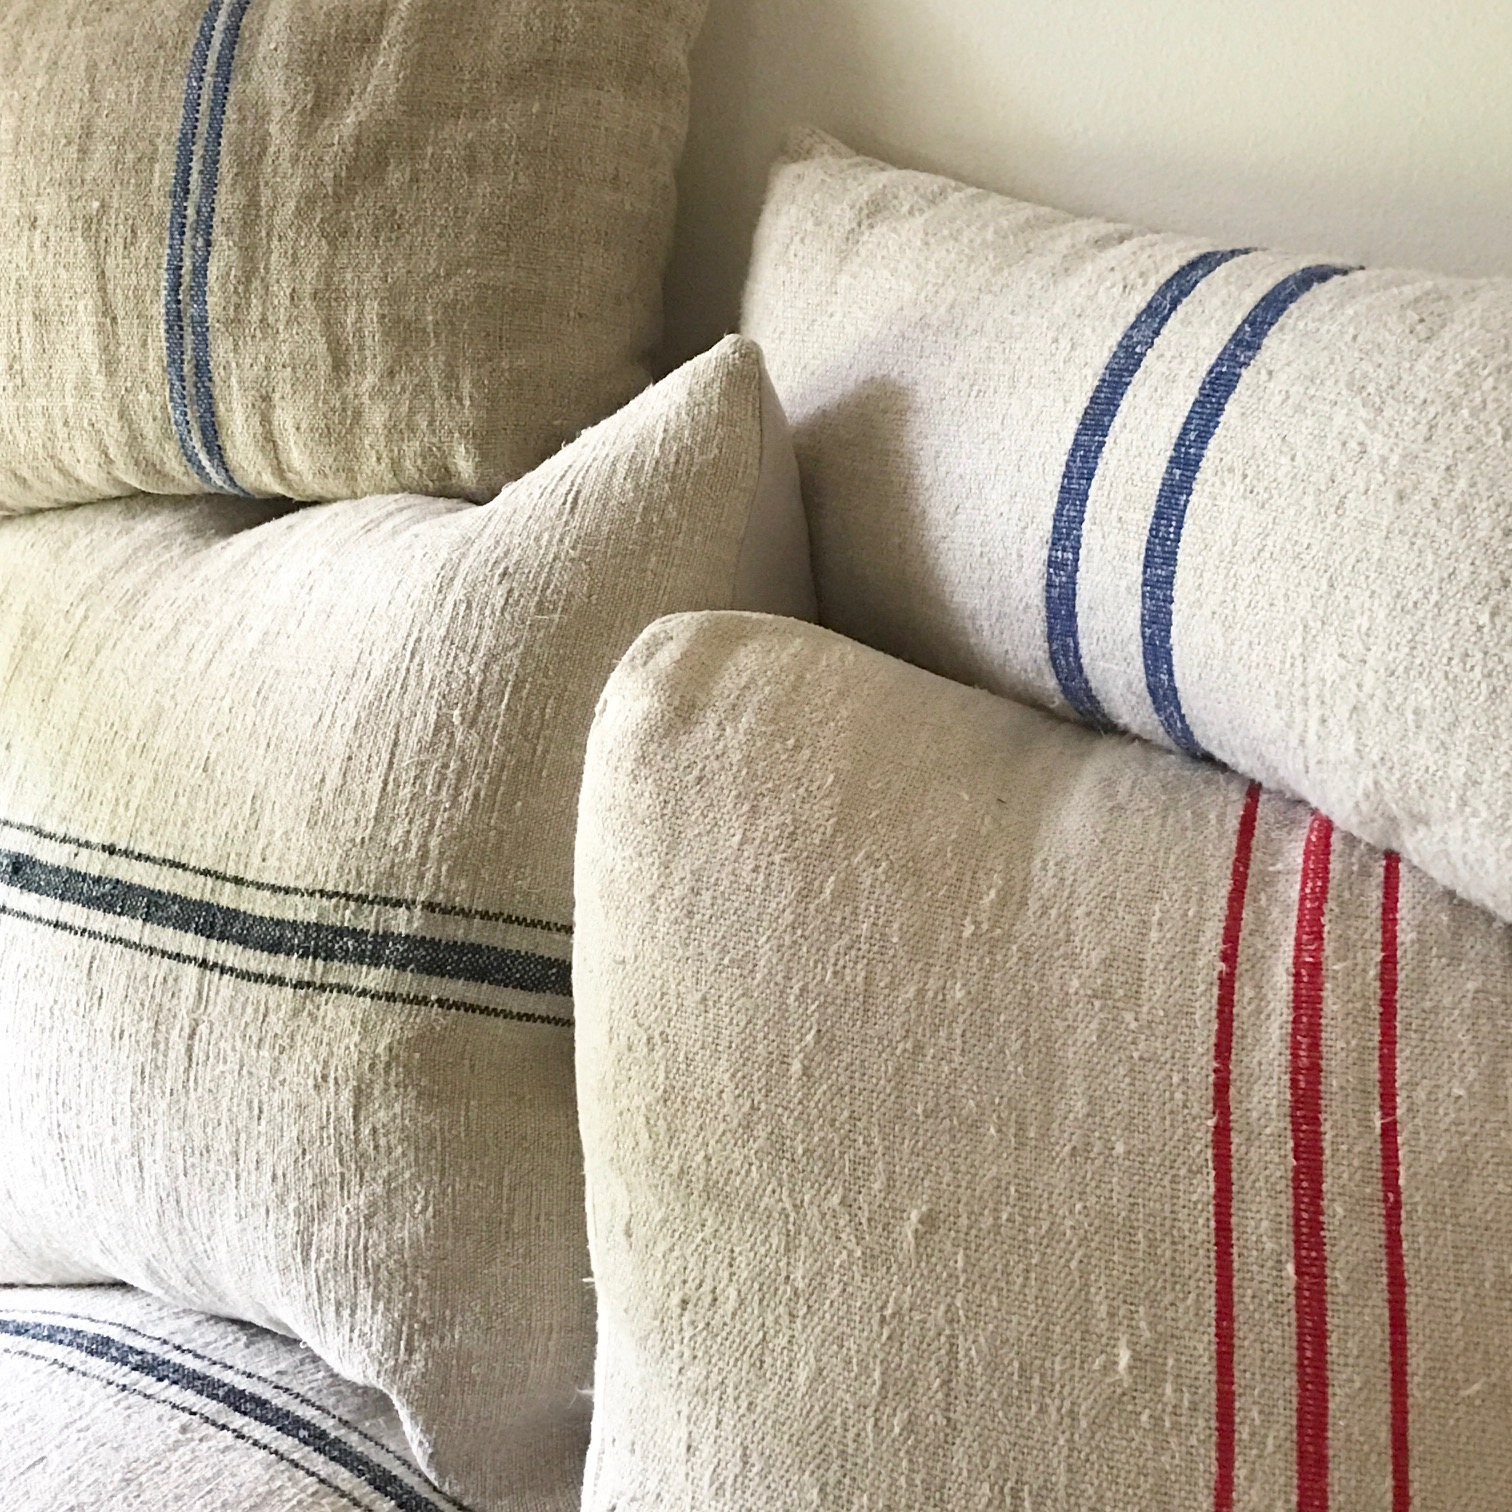 How To Make Affordable Grain Sack Pillows Sew And No Options If You Re Not Up For Making Them Yourself Where Can A Beautiful